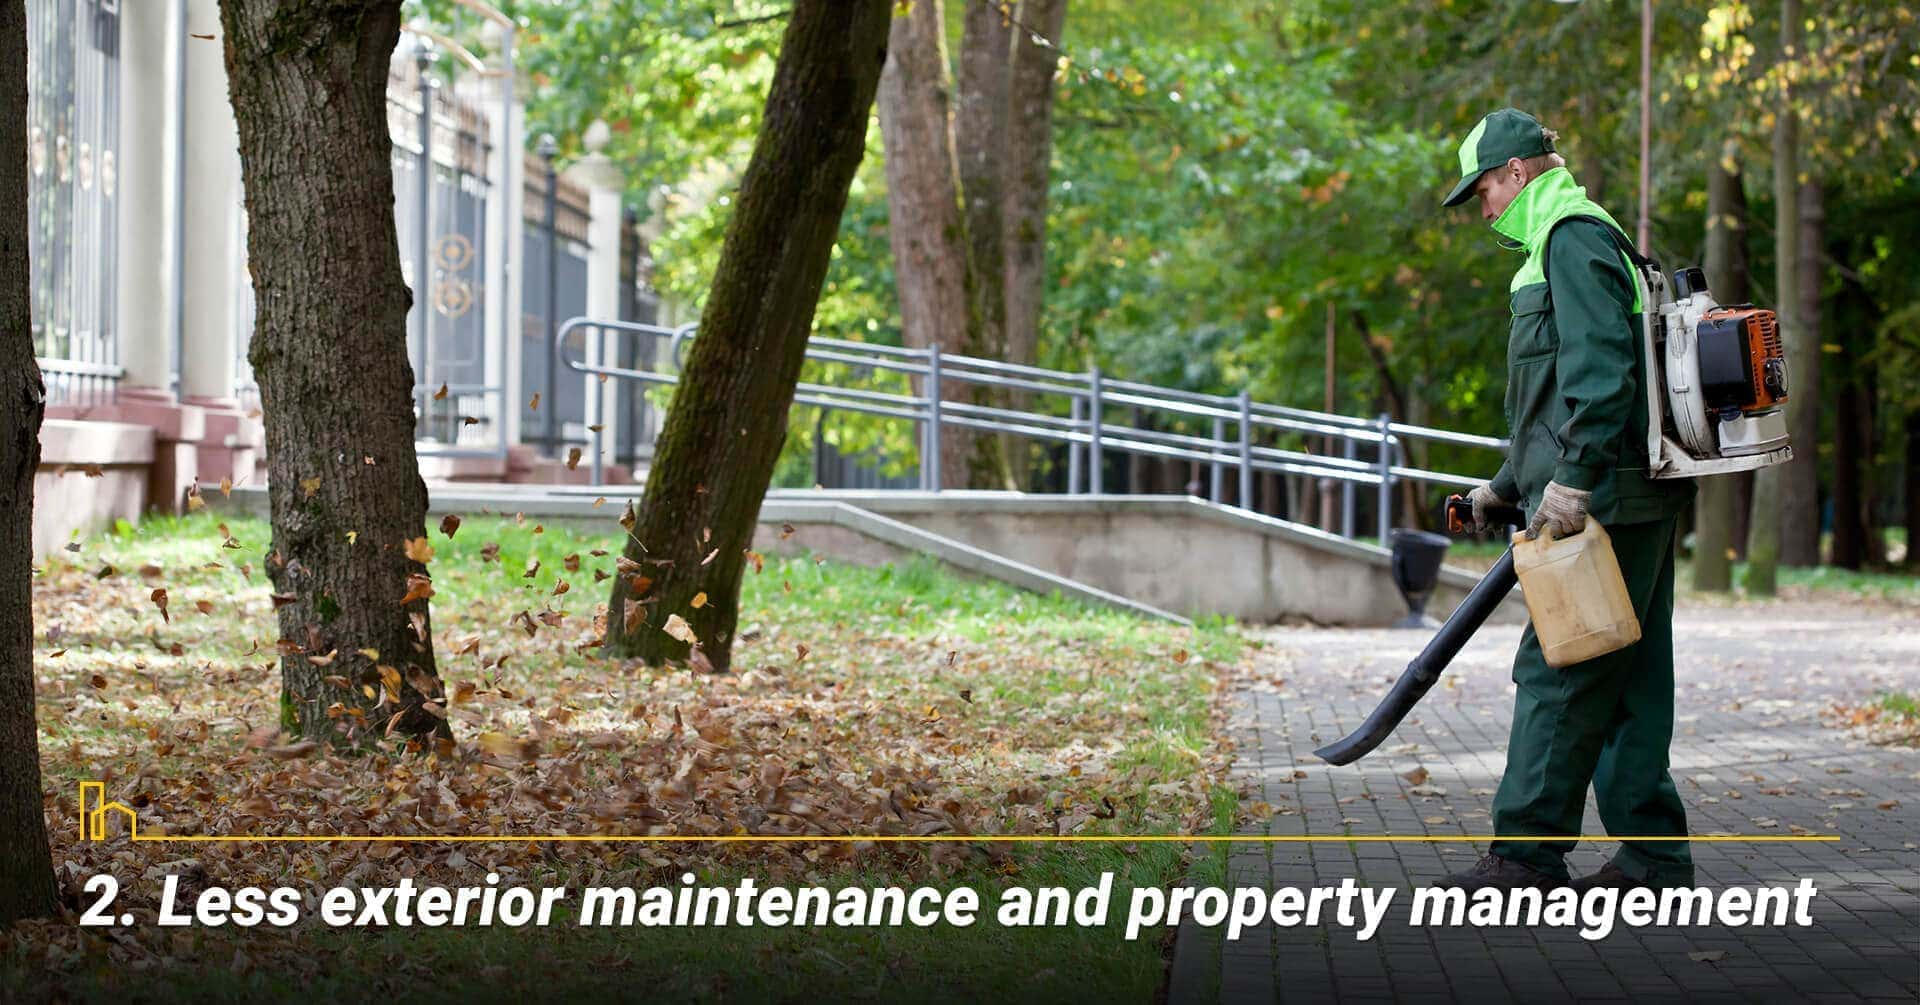 Less exterior maintenance and property management, no more yard works